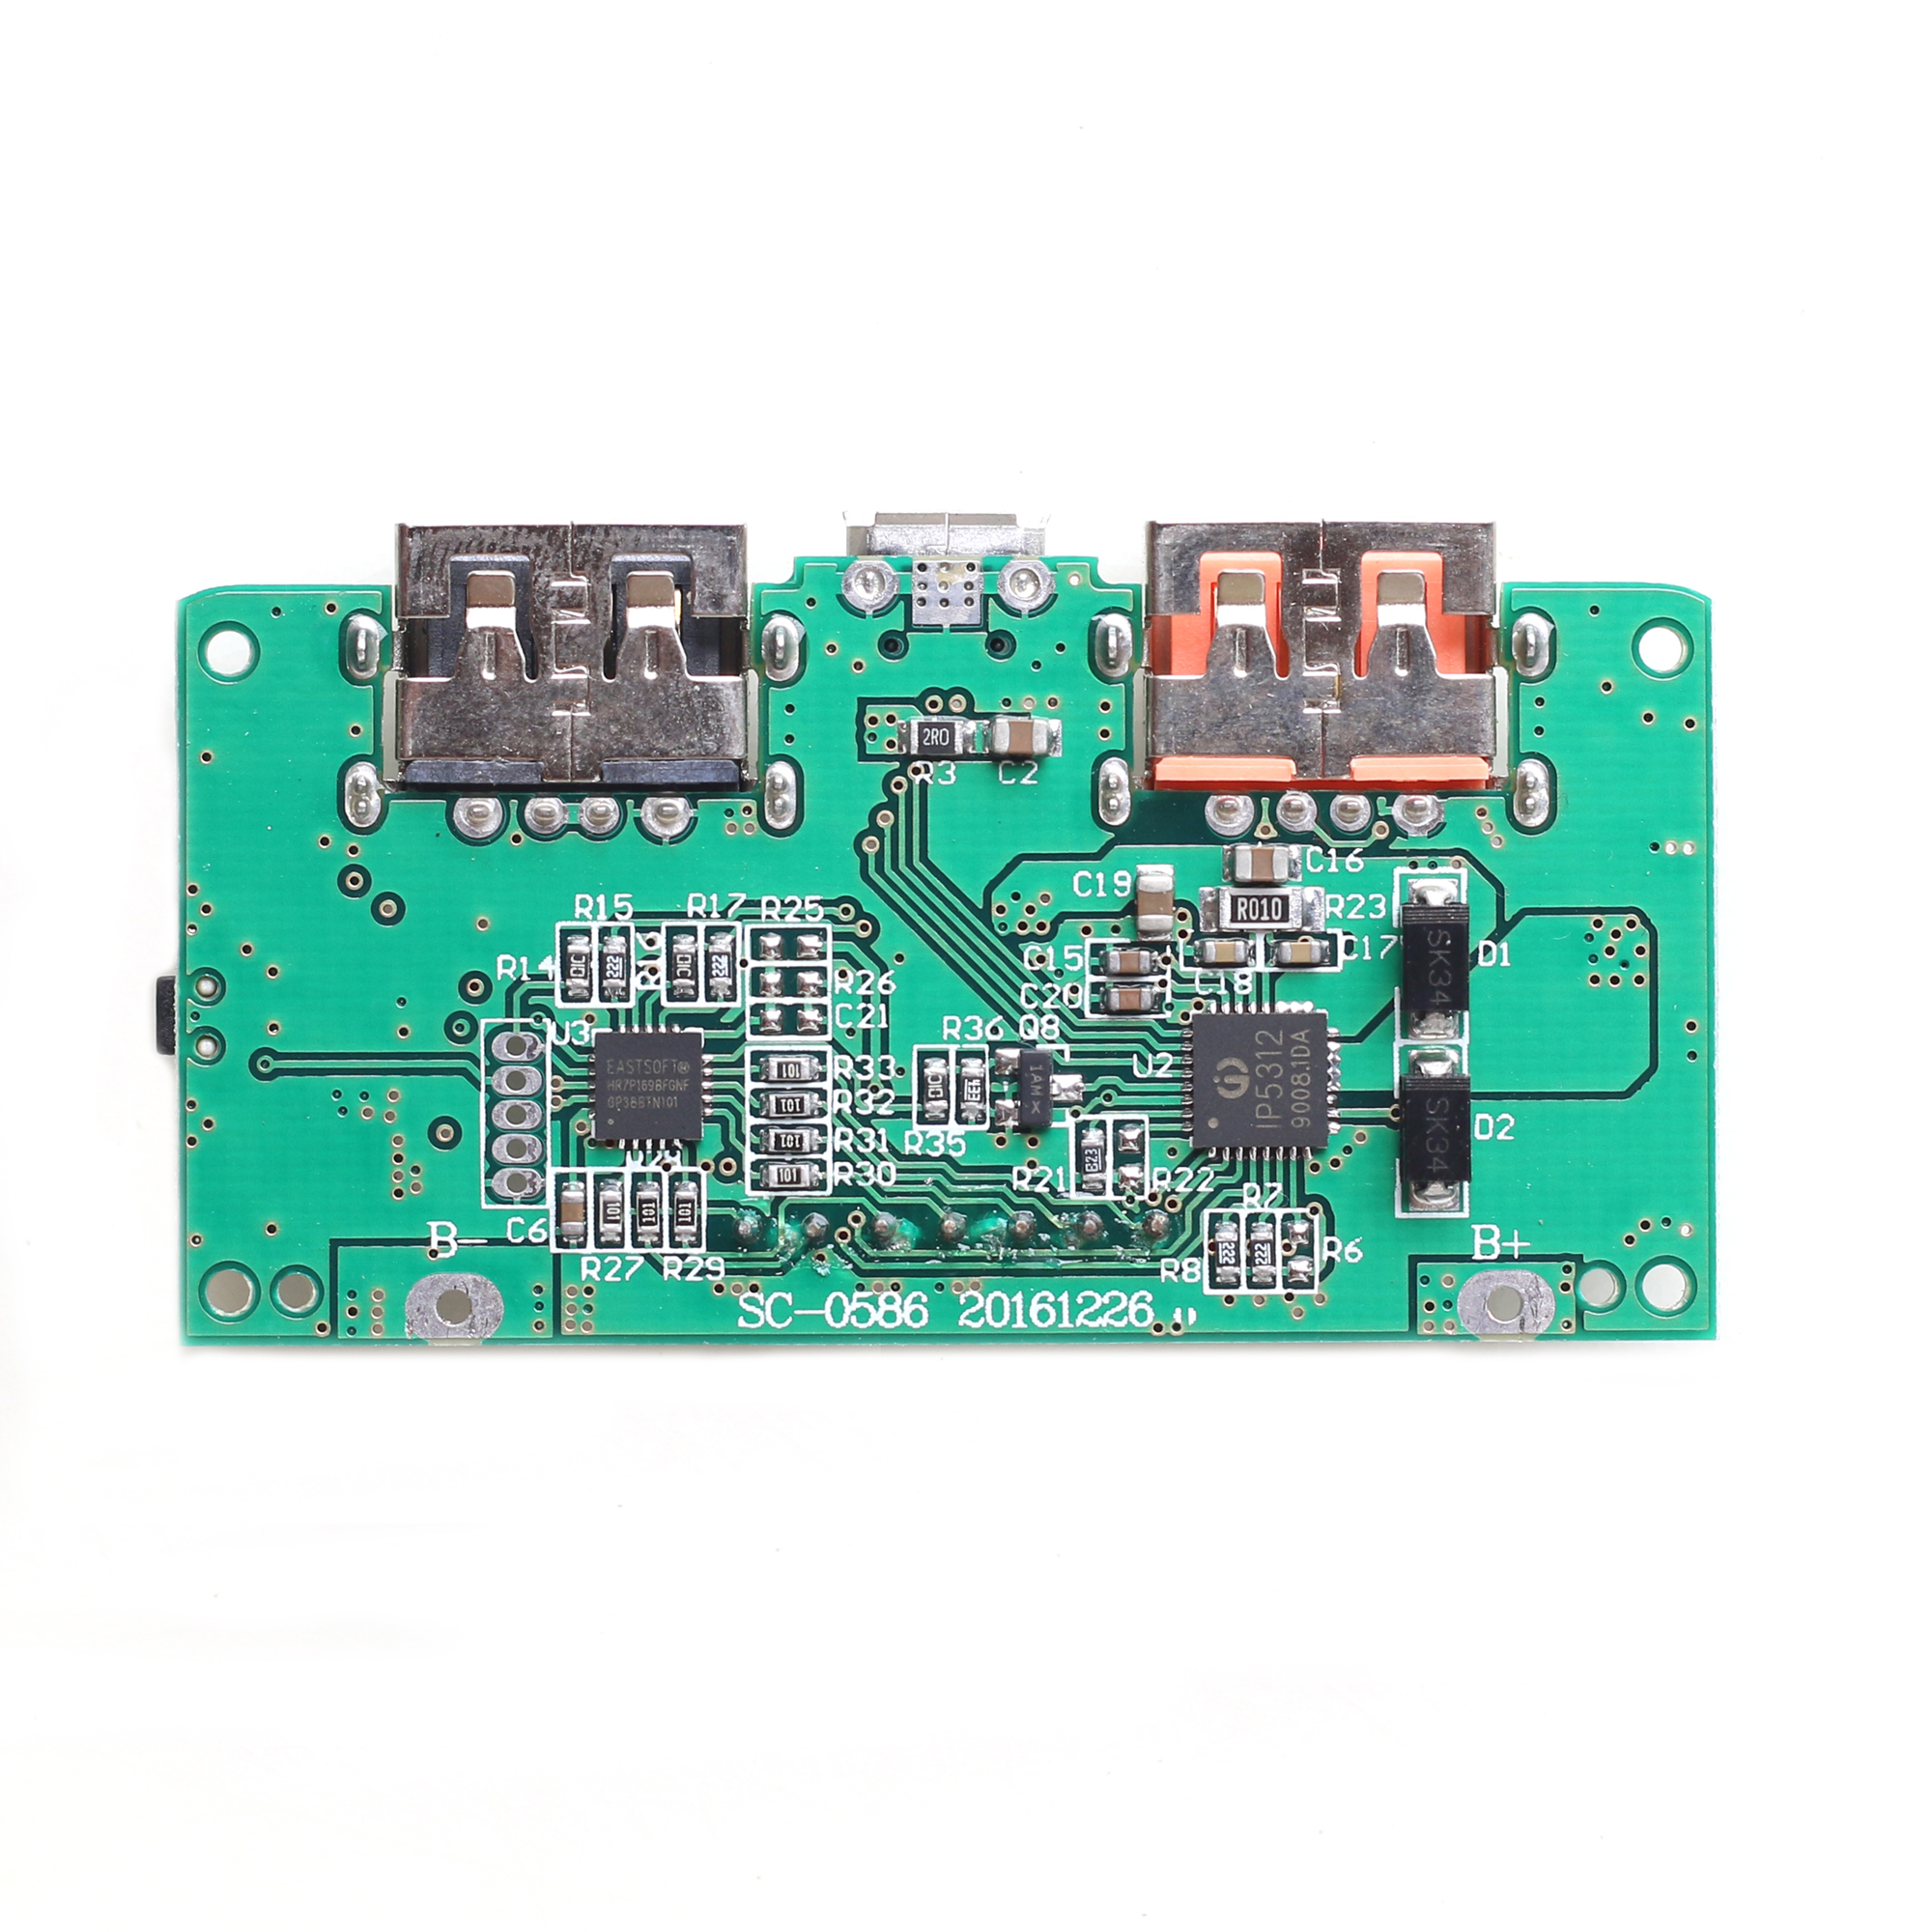 3.7V 5V High Pass QC3.0 Fast Charging Press Board Digital Electric ...